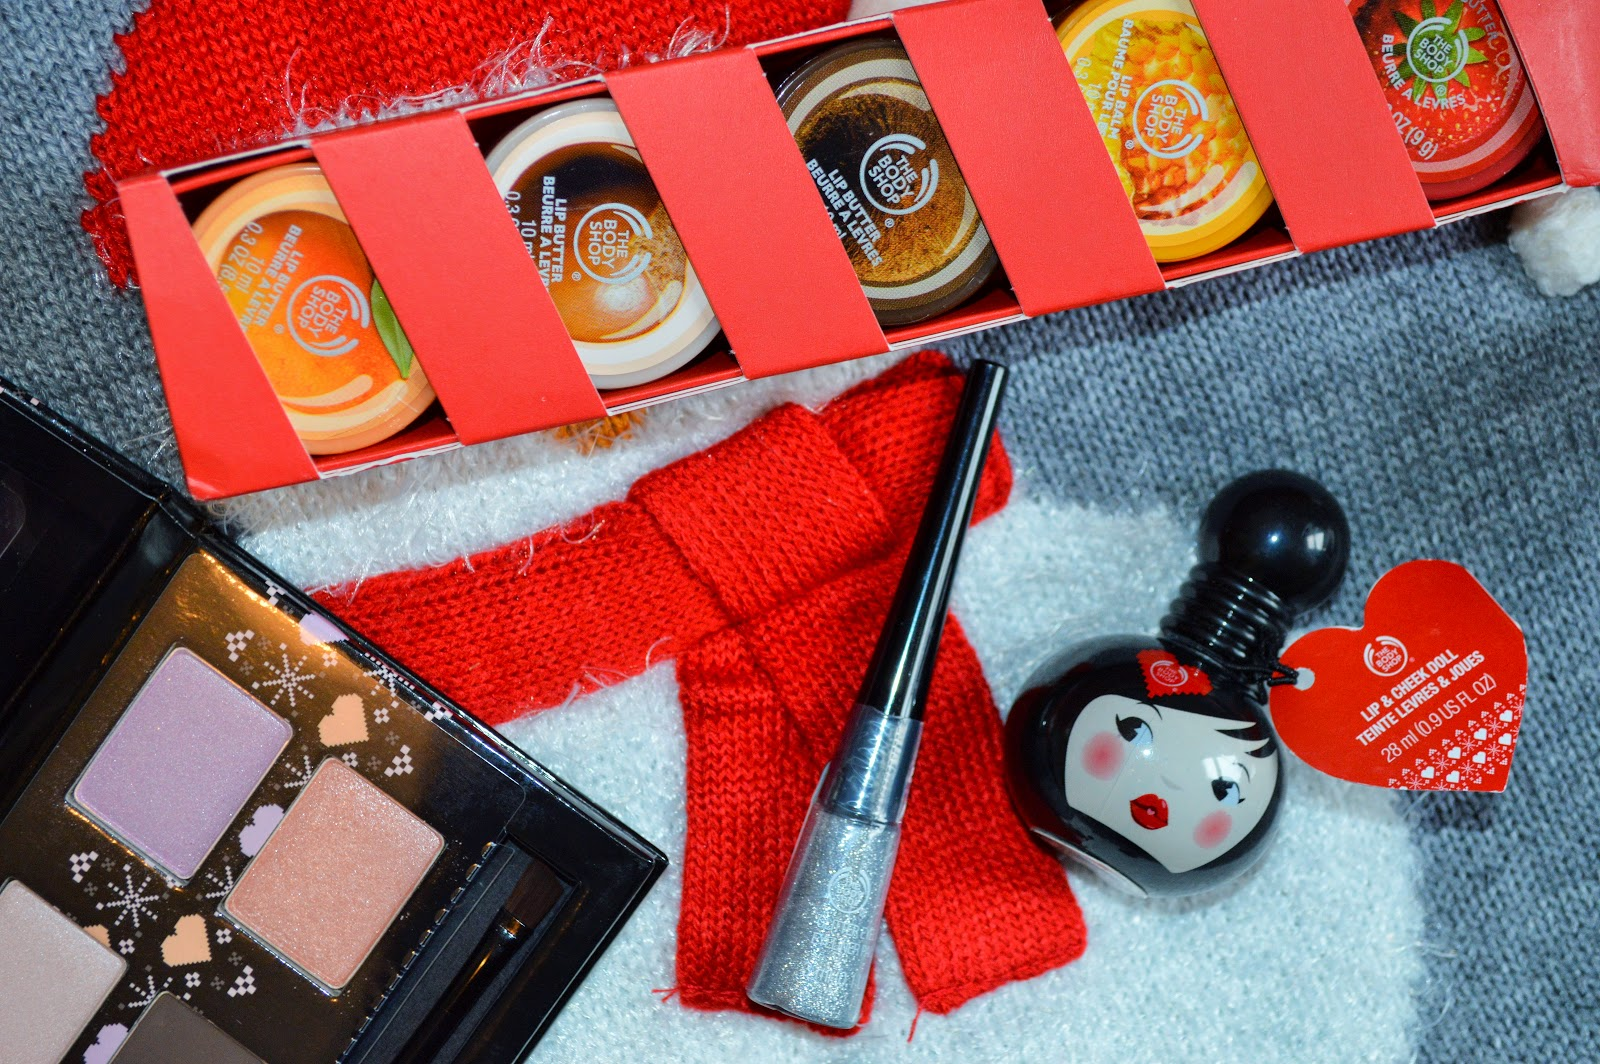 The Body Shop Candy Kisses, Dolly Pastels Eye Palette, Glitter Eyeliner and Lip & Cheek Doll